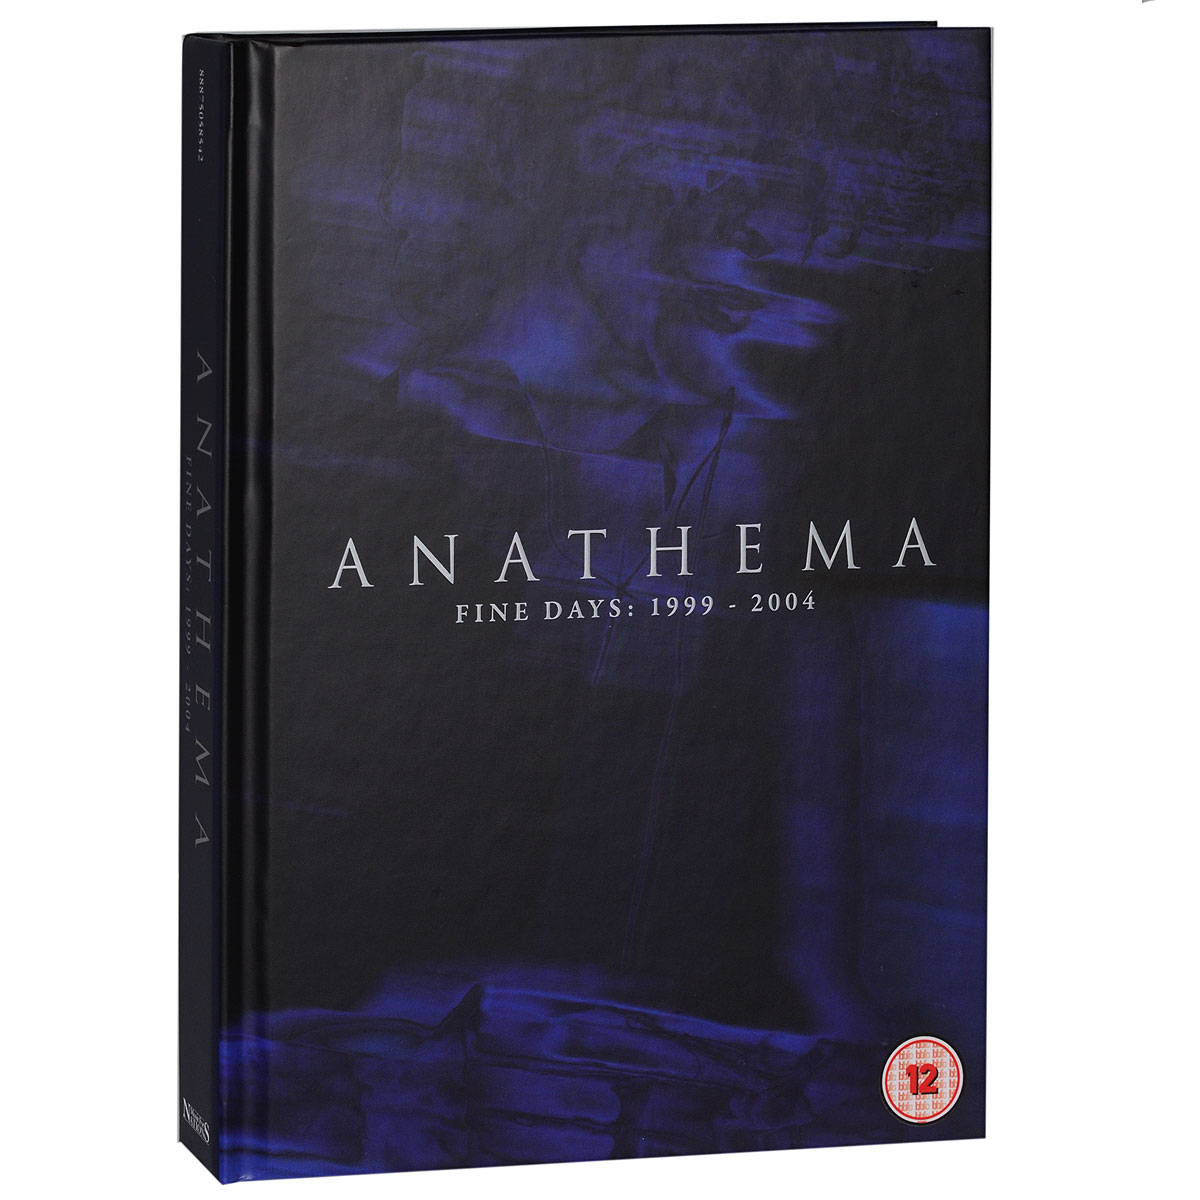 Anathema Anathema. Fine Days. 1999-2004 (3 CD + DVD) 3dm2283 leadshine digital microstep drive 3 phase 11 7a ac180 240v fit 86 110 130 motor